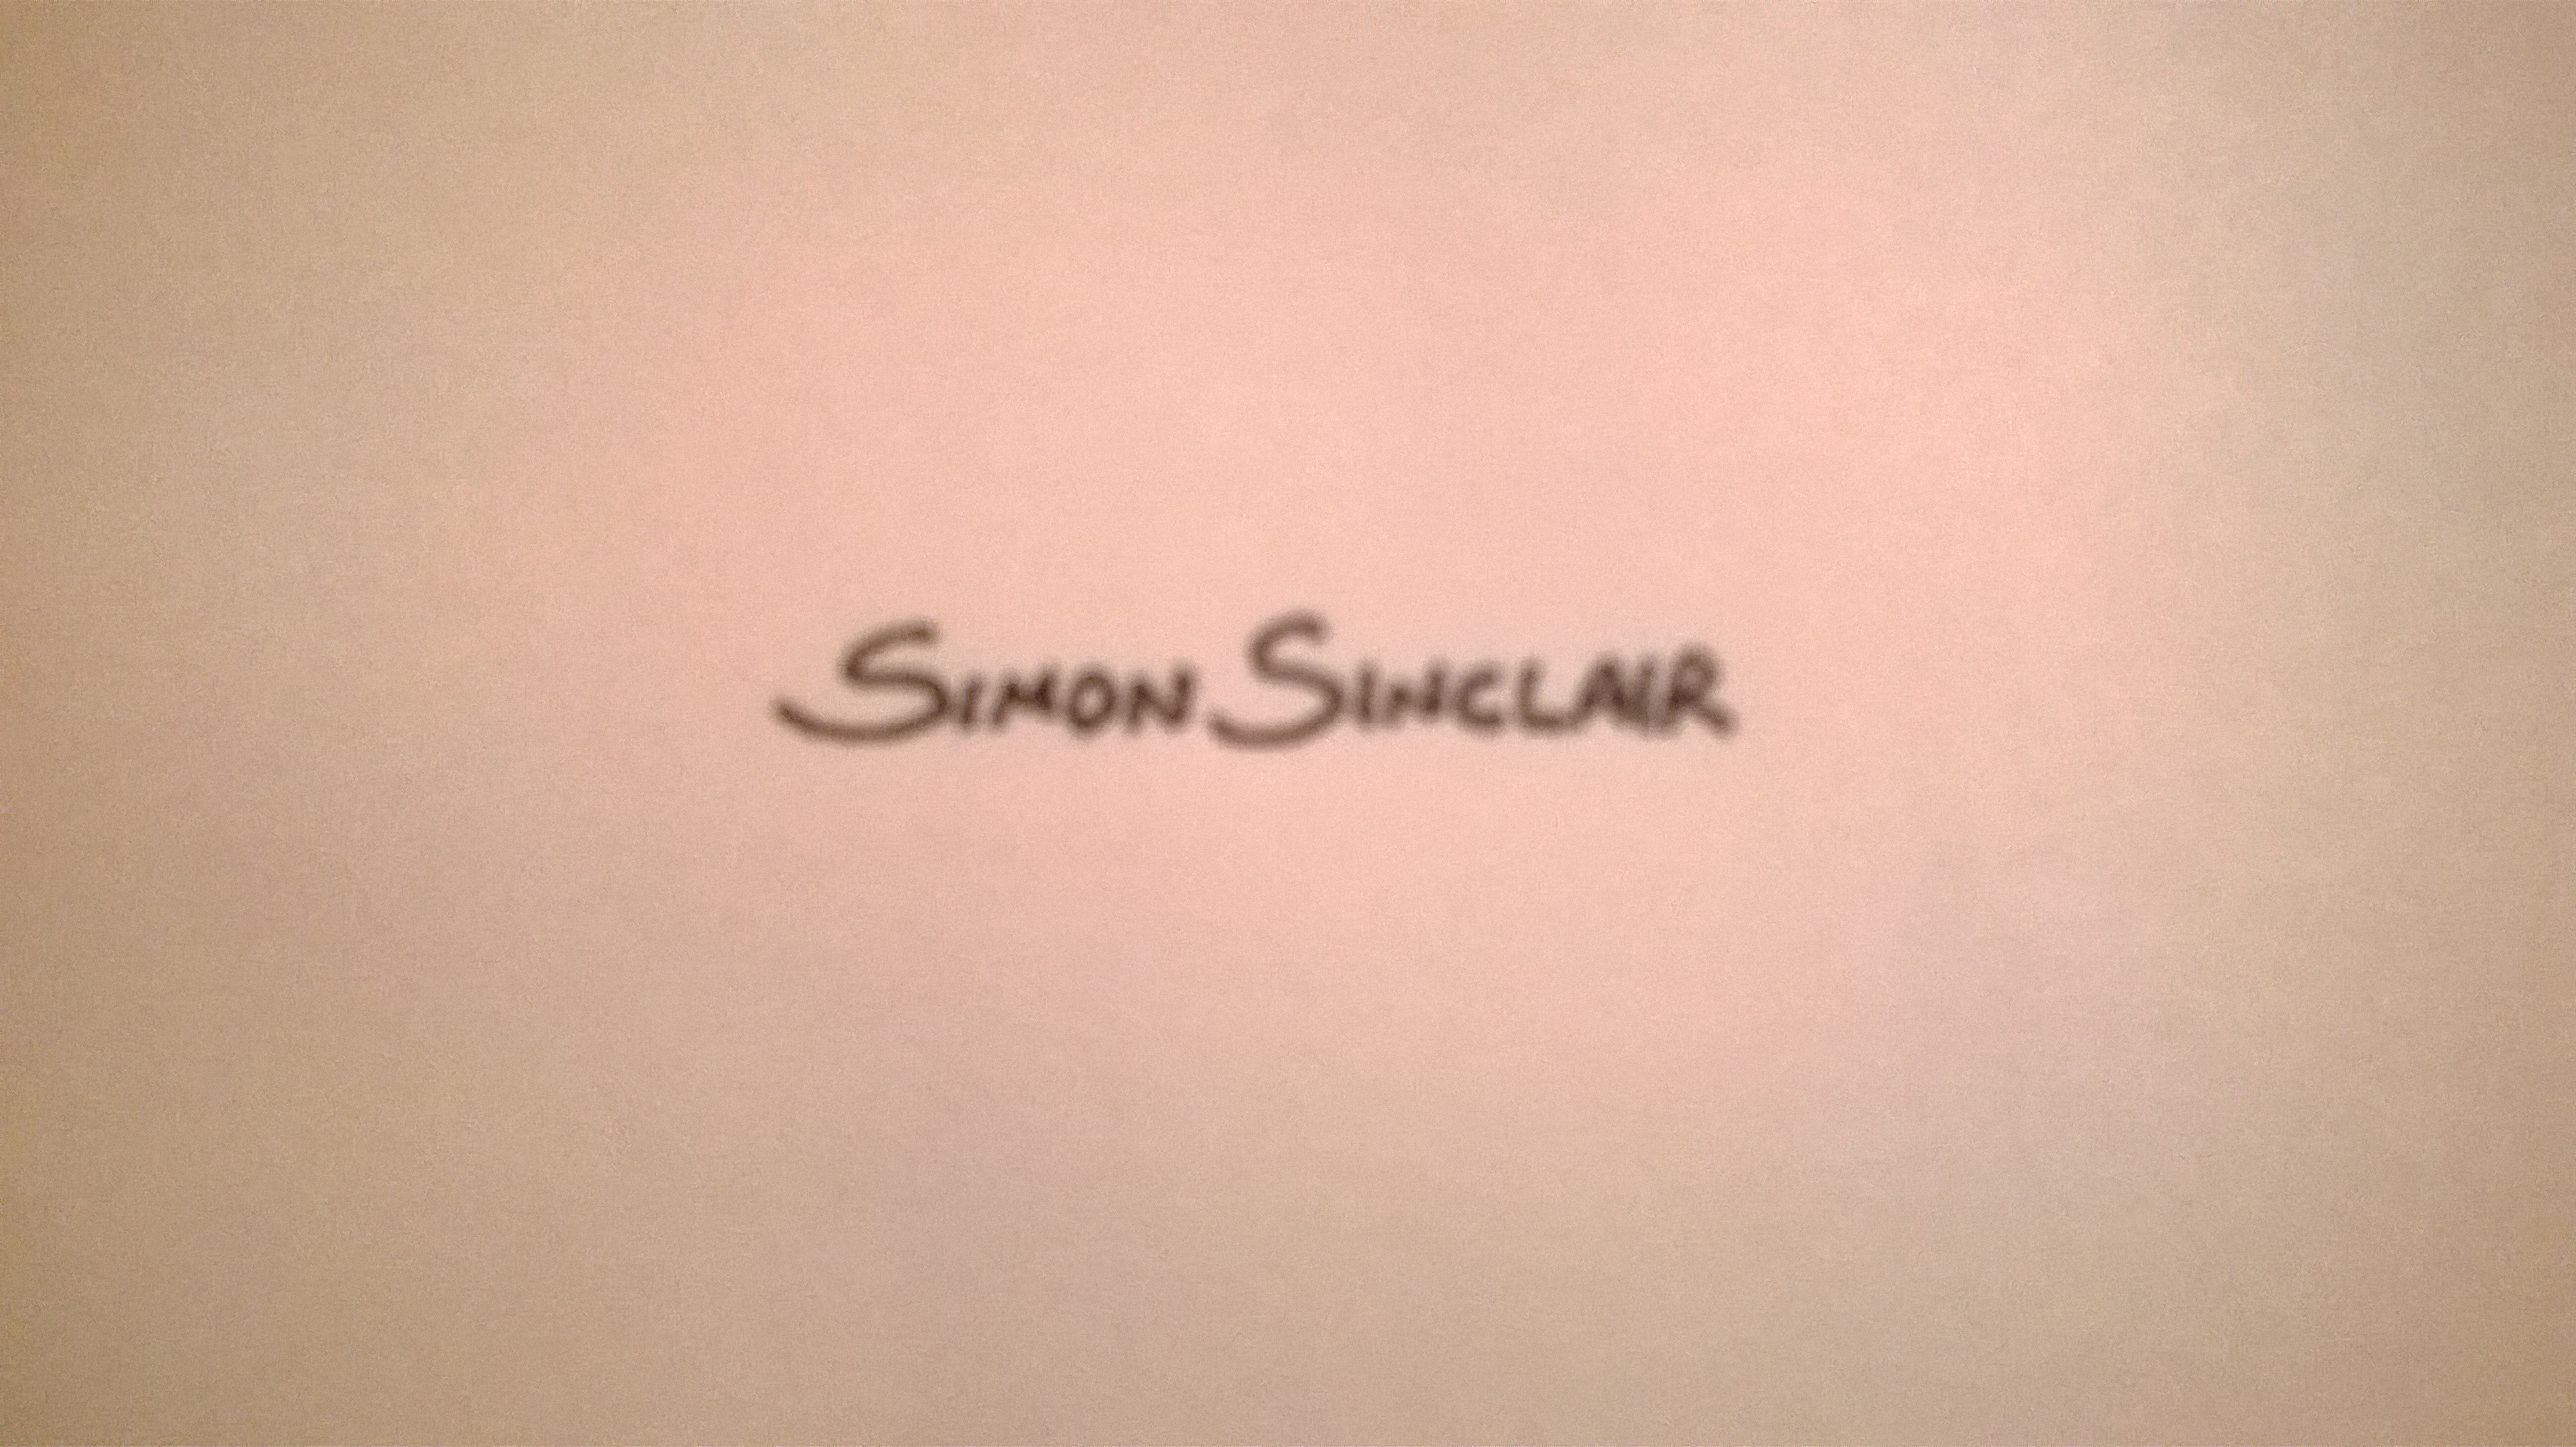 simon sinclair Signature